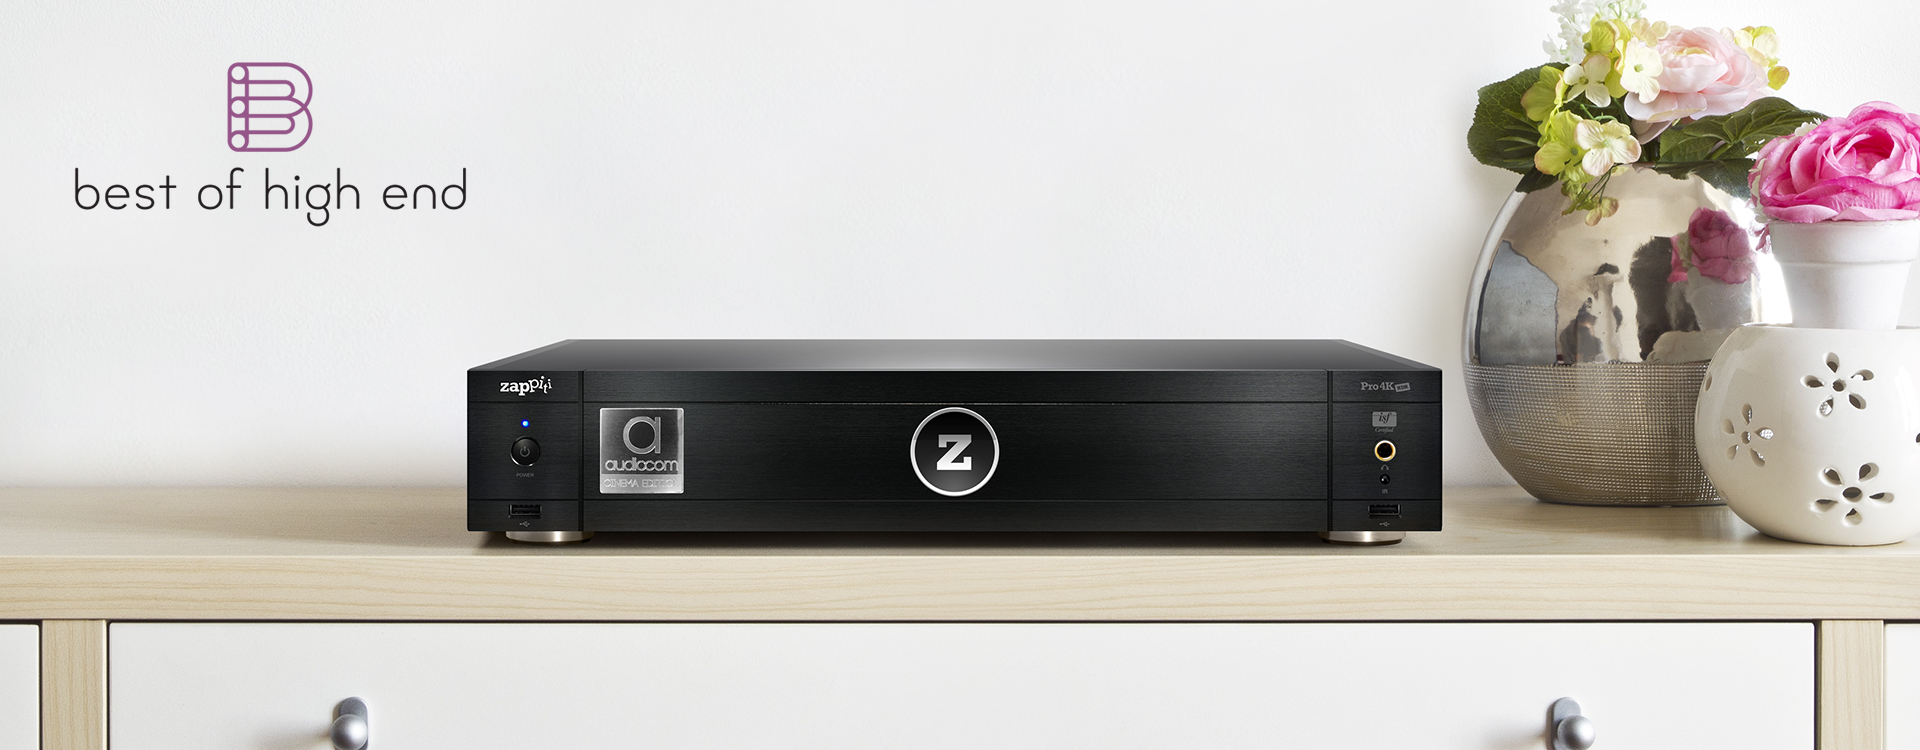 Zappiti Pro 4K HDR Cinema Edition review by Best of High End receives top Award!